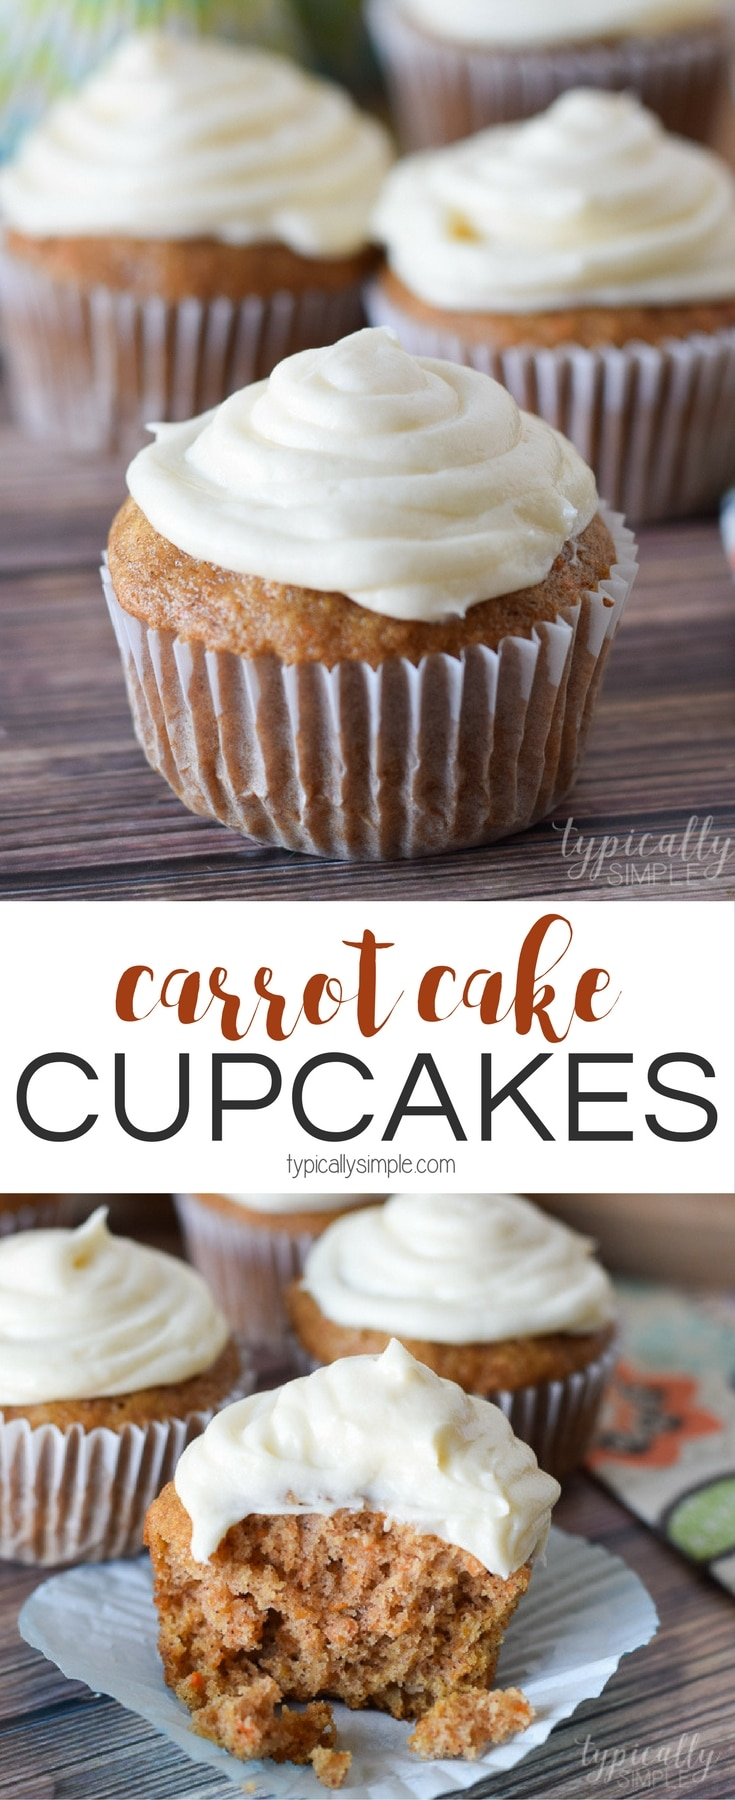 With a hint of cinnamon and a slightly sweet cream cheese frosting, these carrot cake cupcakes are a delicious dessert to serve for Easter or at a spring brunch.